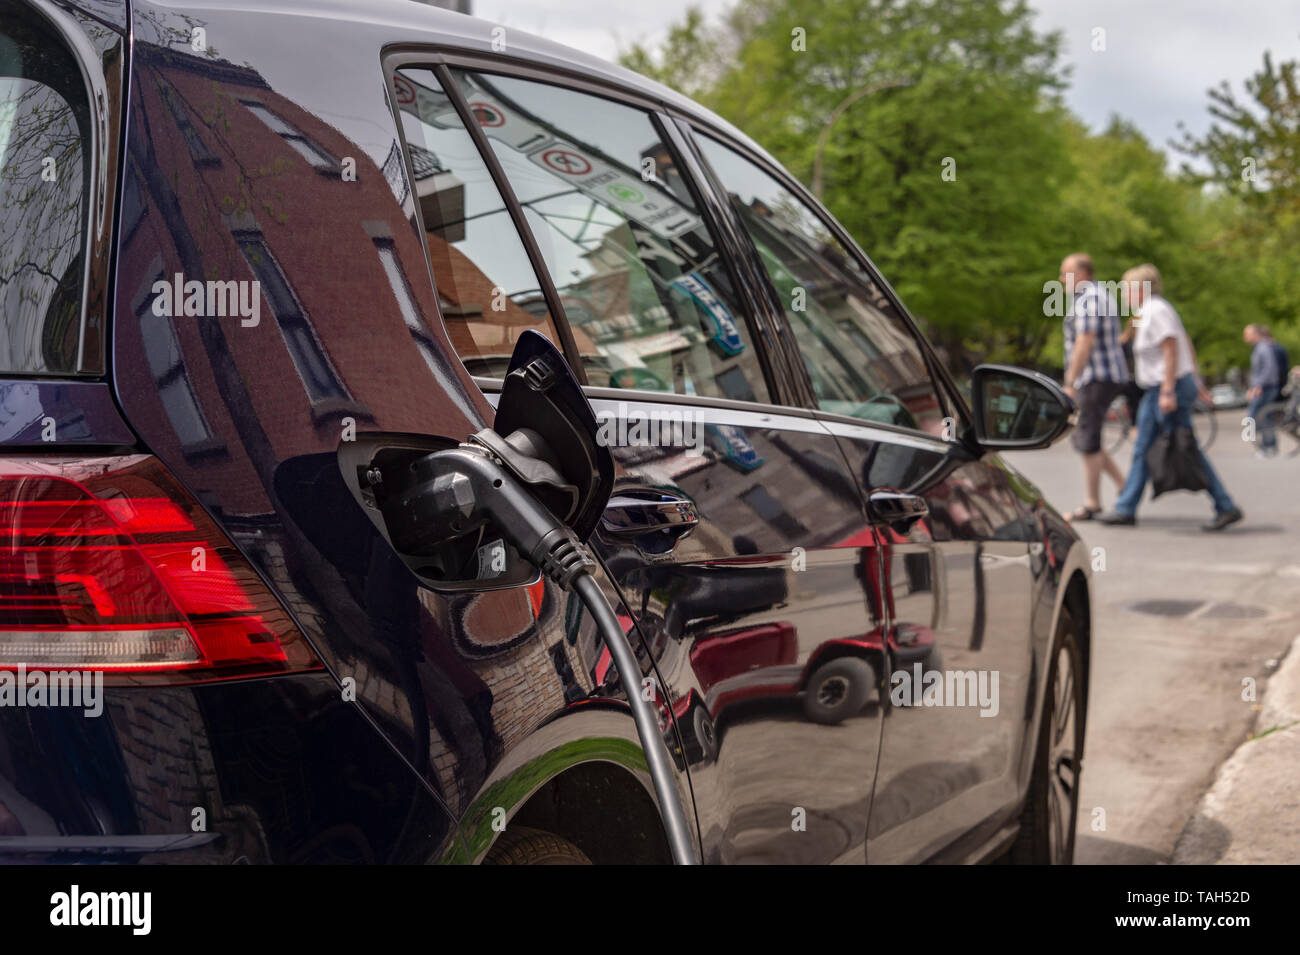 Montreal, CA - 25 May 2019: Electric car plugged into an EV charging station. - Stock Image